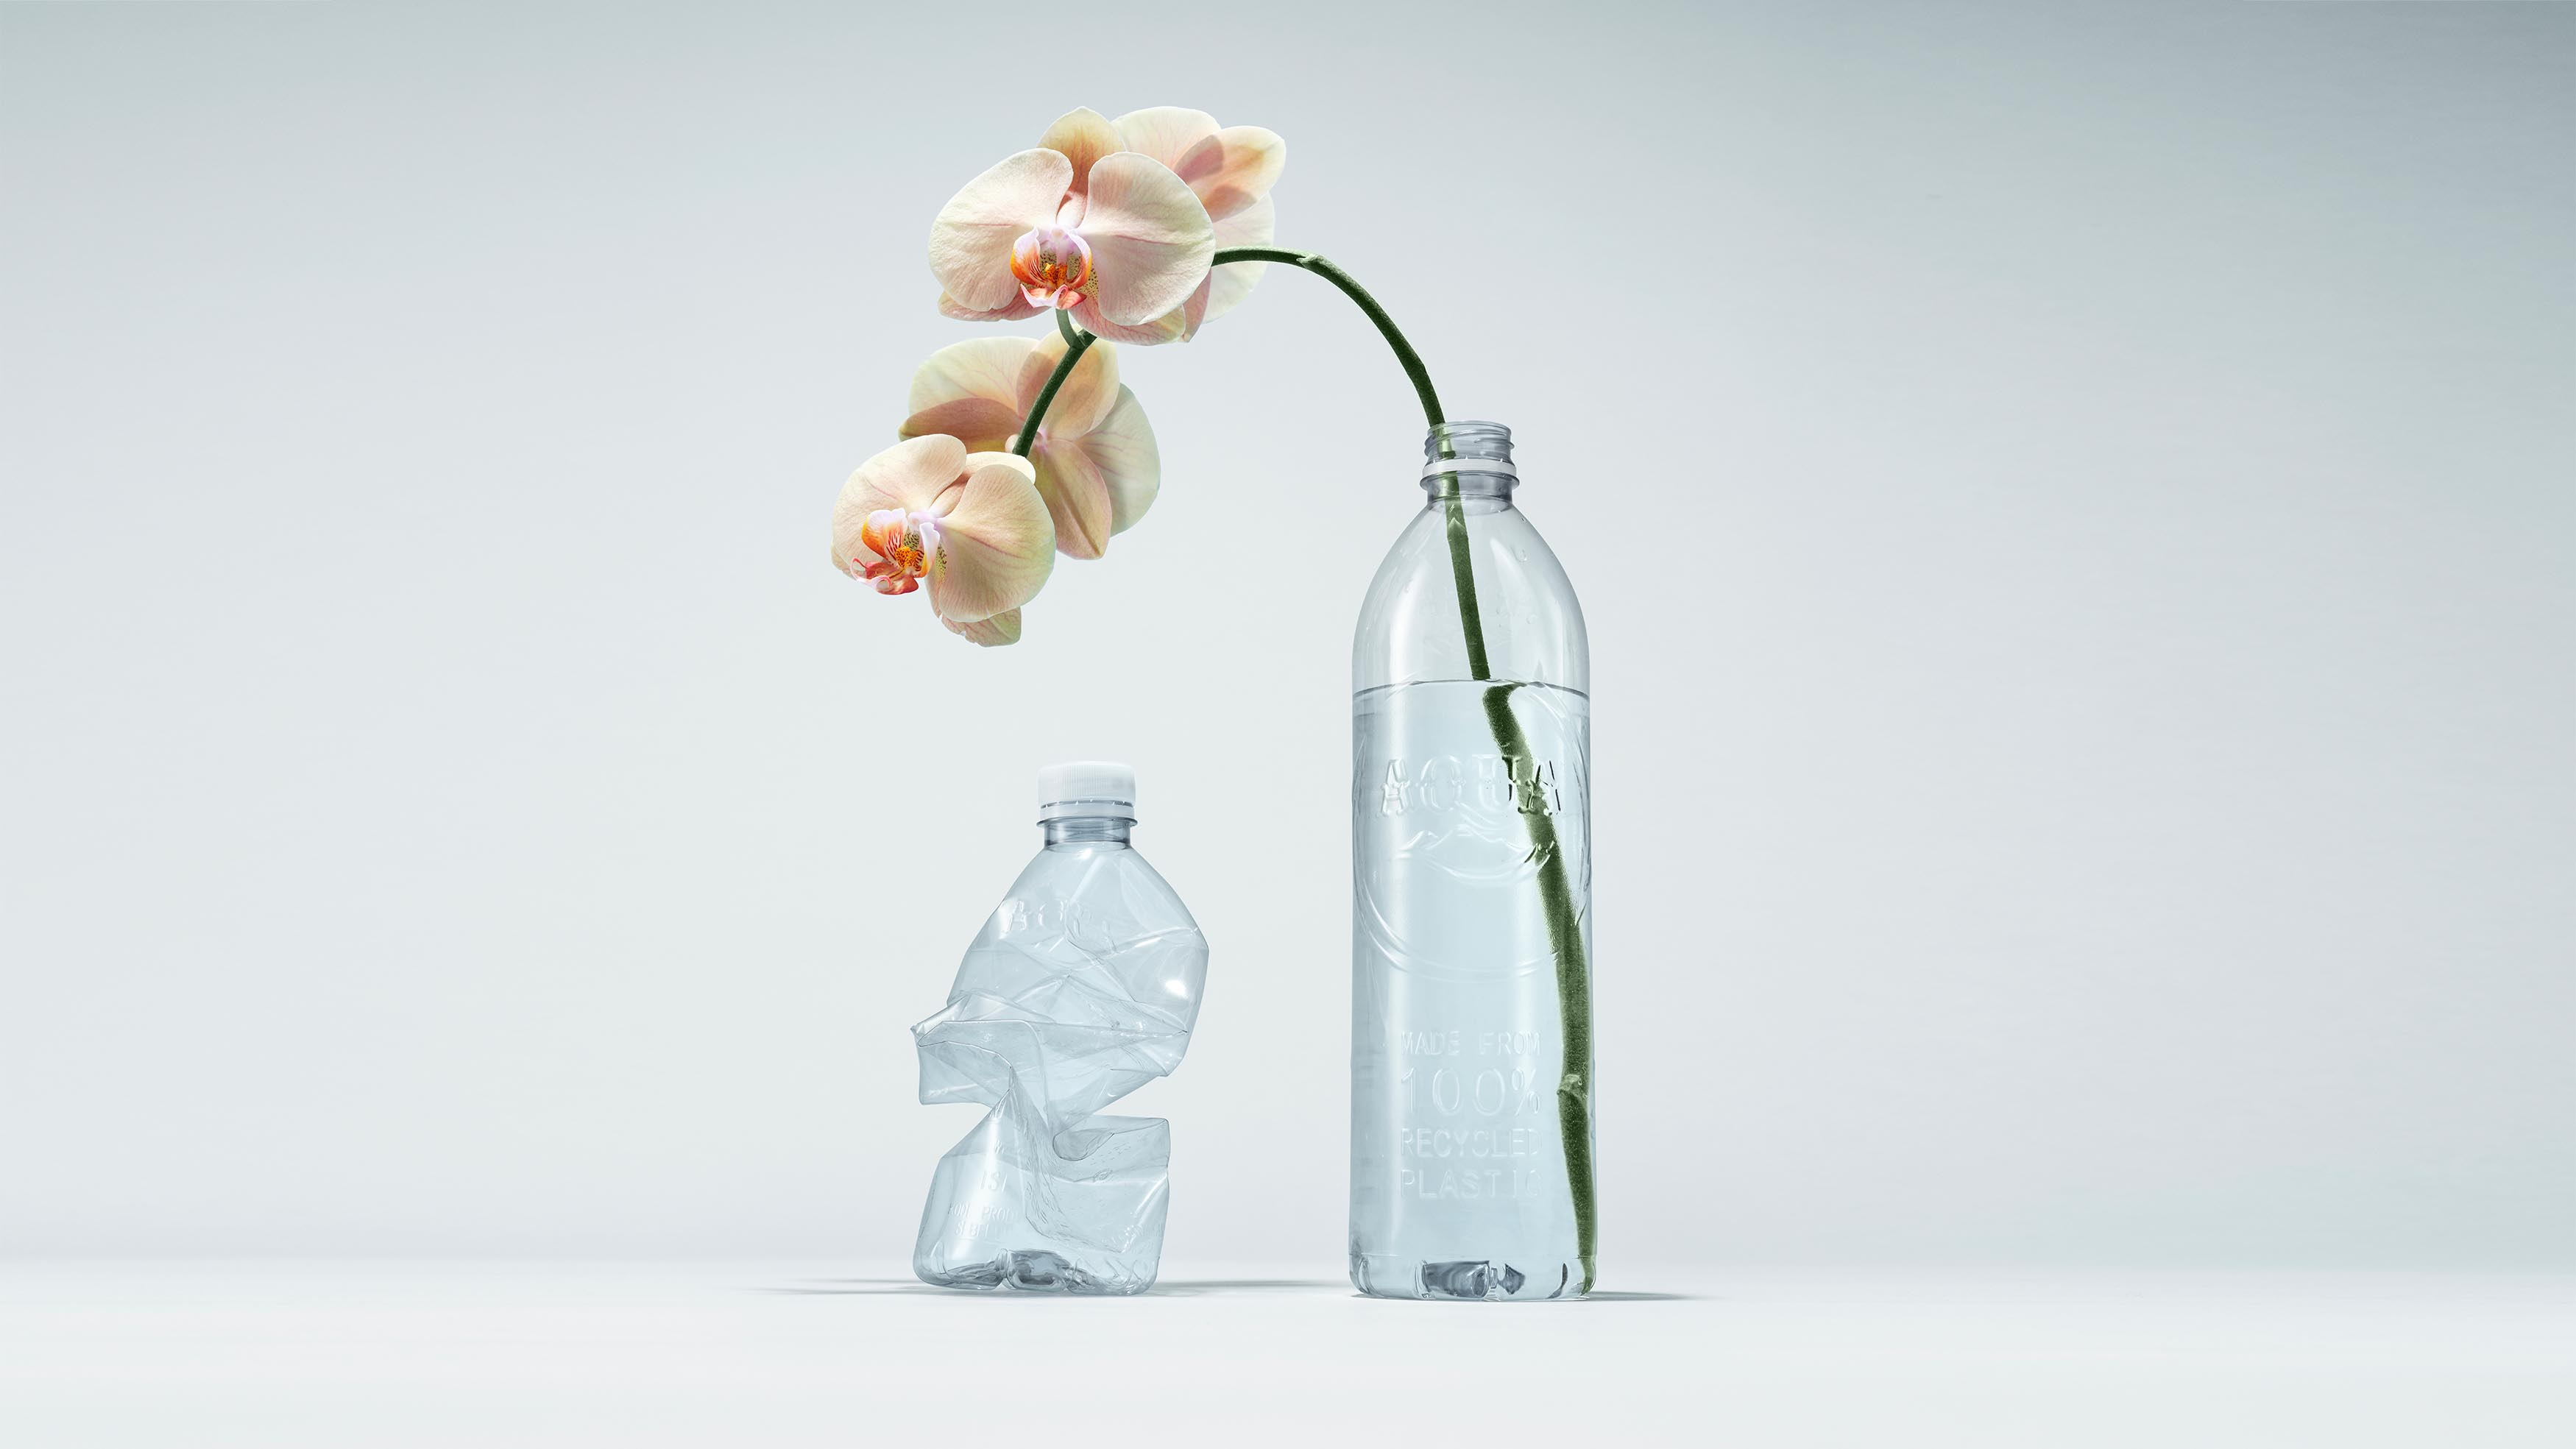 Everland Created an Identity for Aqua's Recently Launched a Bottle Made from 100% Recycled Plastic